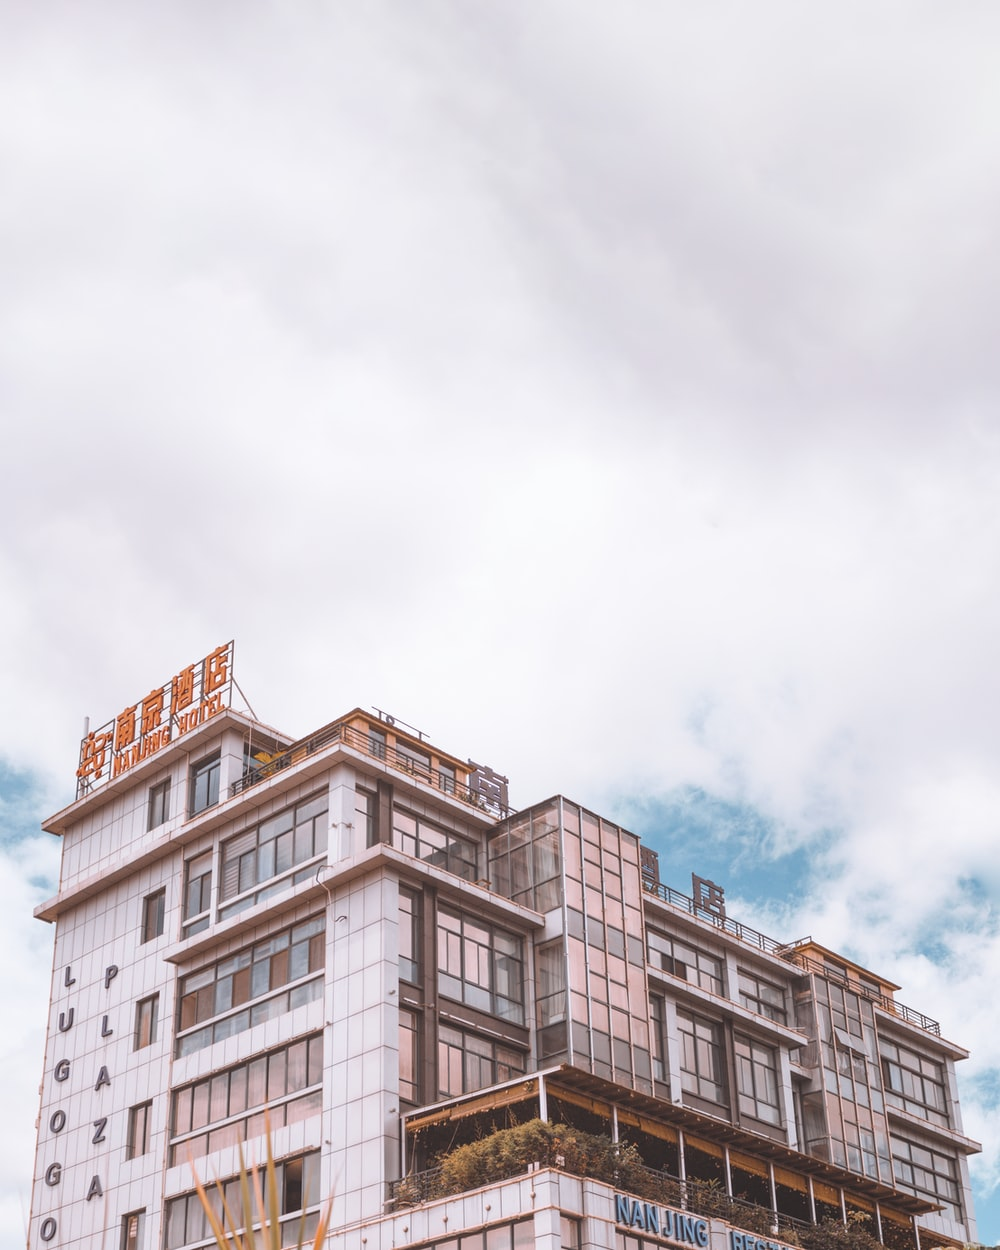 white and brown concrete building under white clouds during daytime